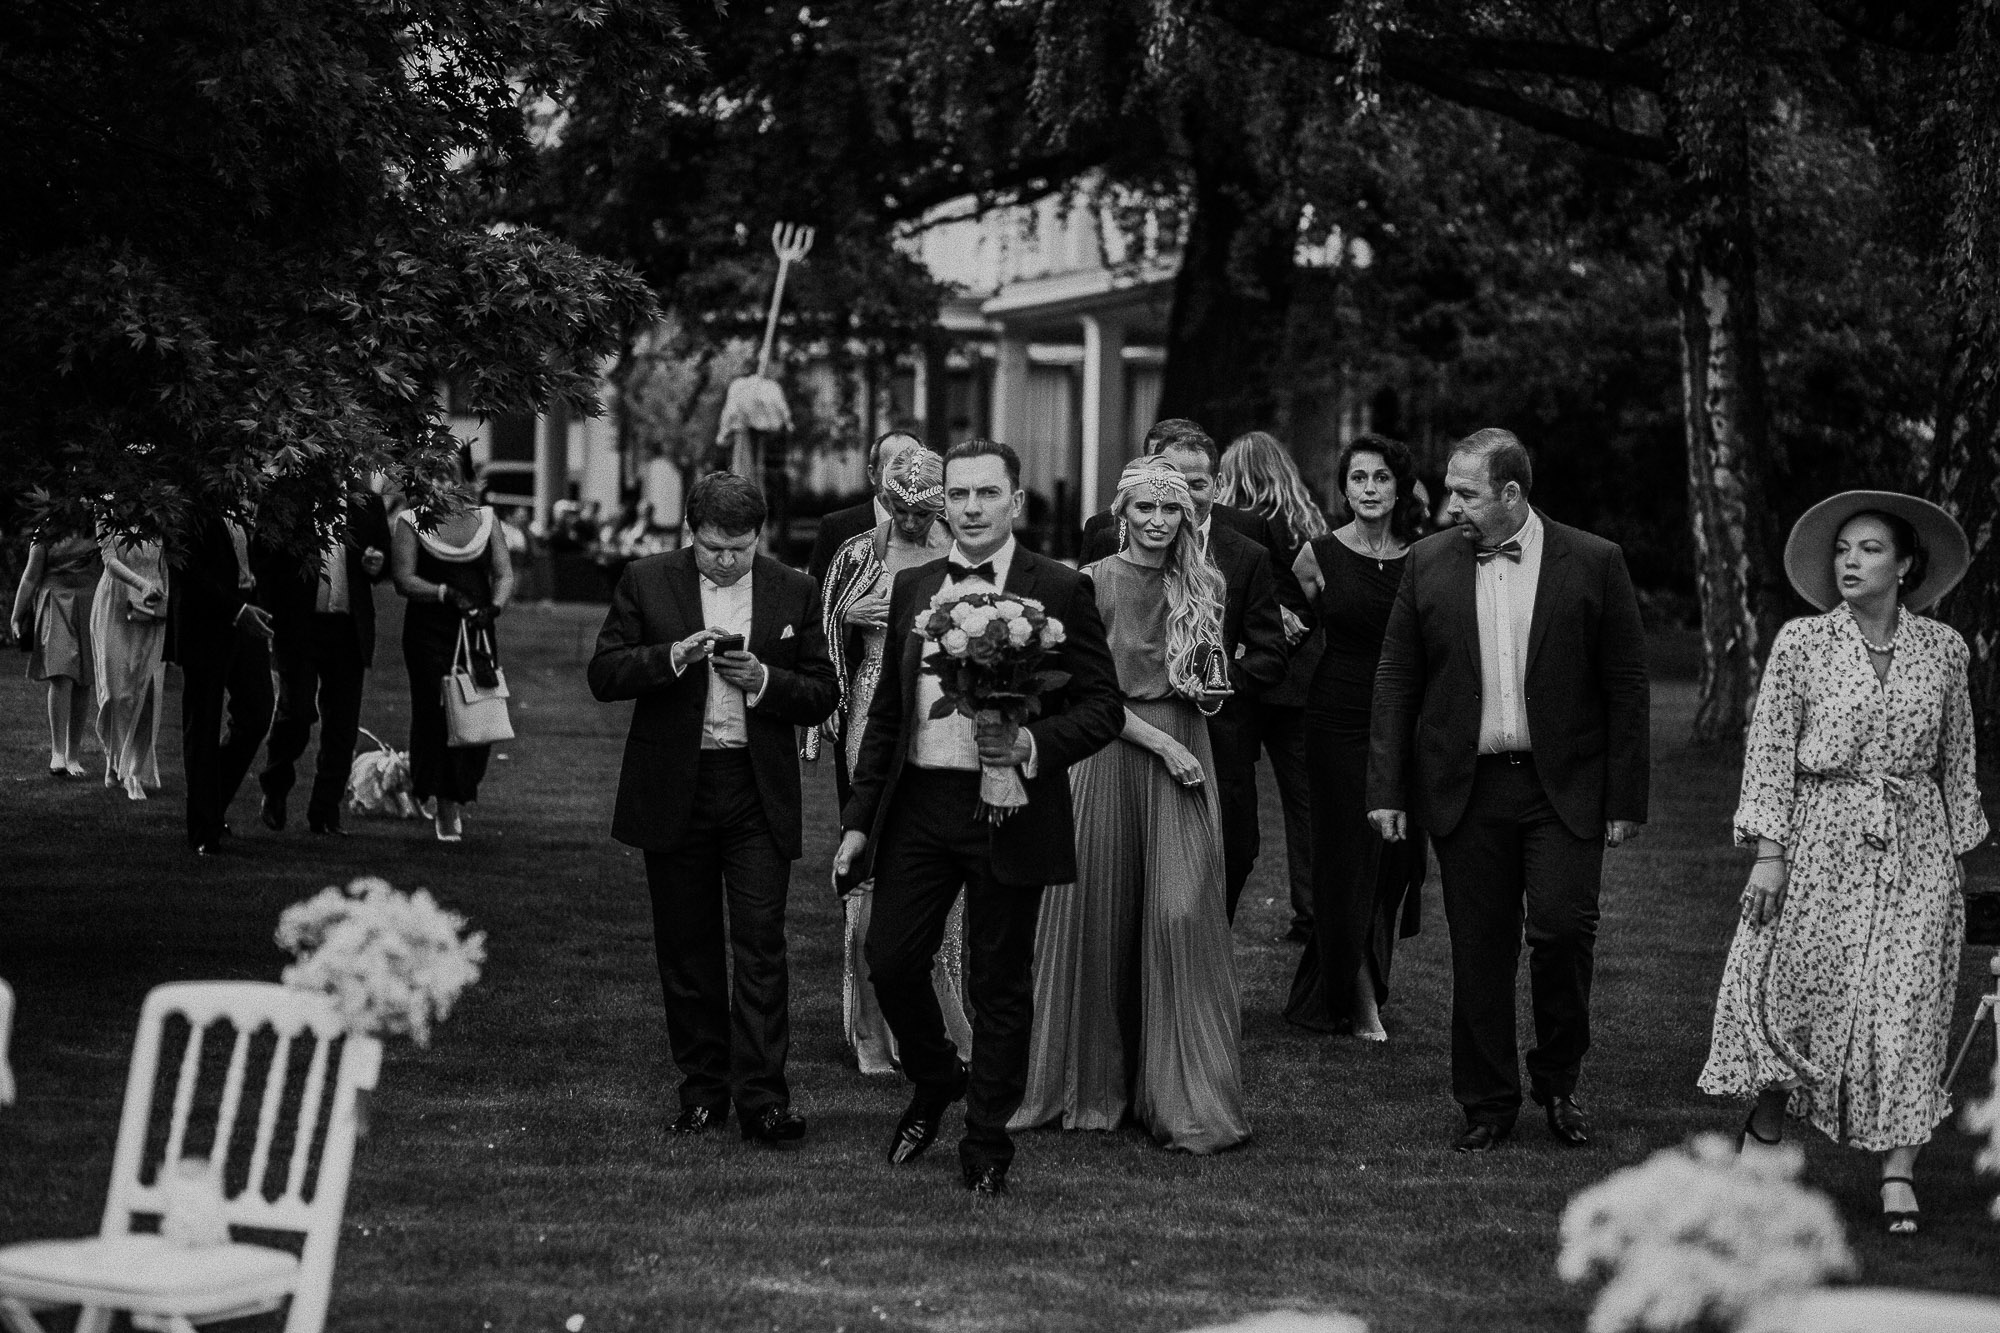 Baur Au Lac Wedding Photographer in Zurich